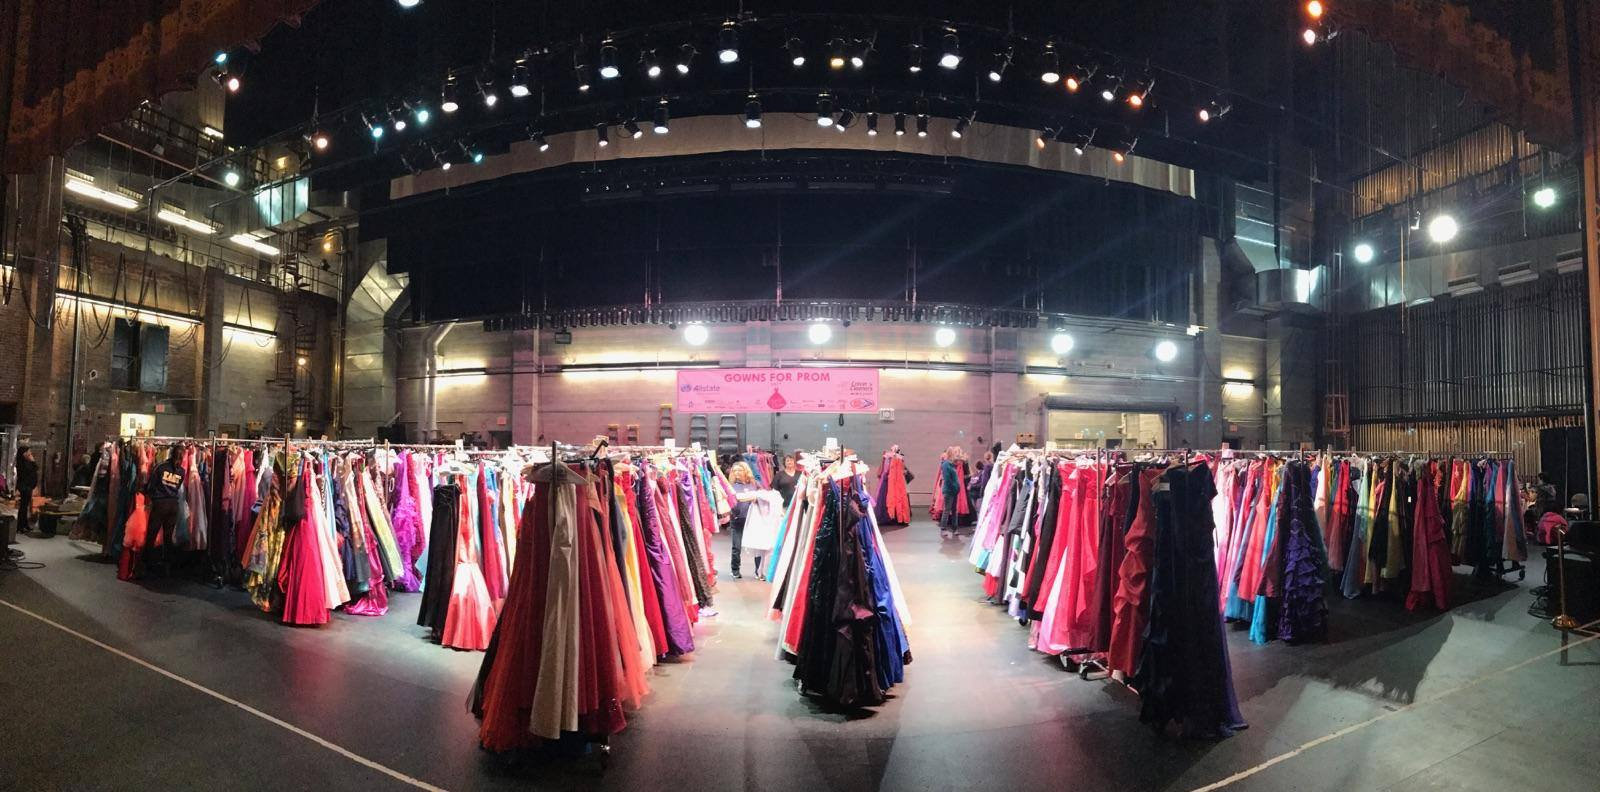 Gowns for Prom Tailoring Volunteer